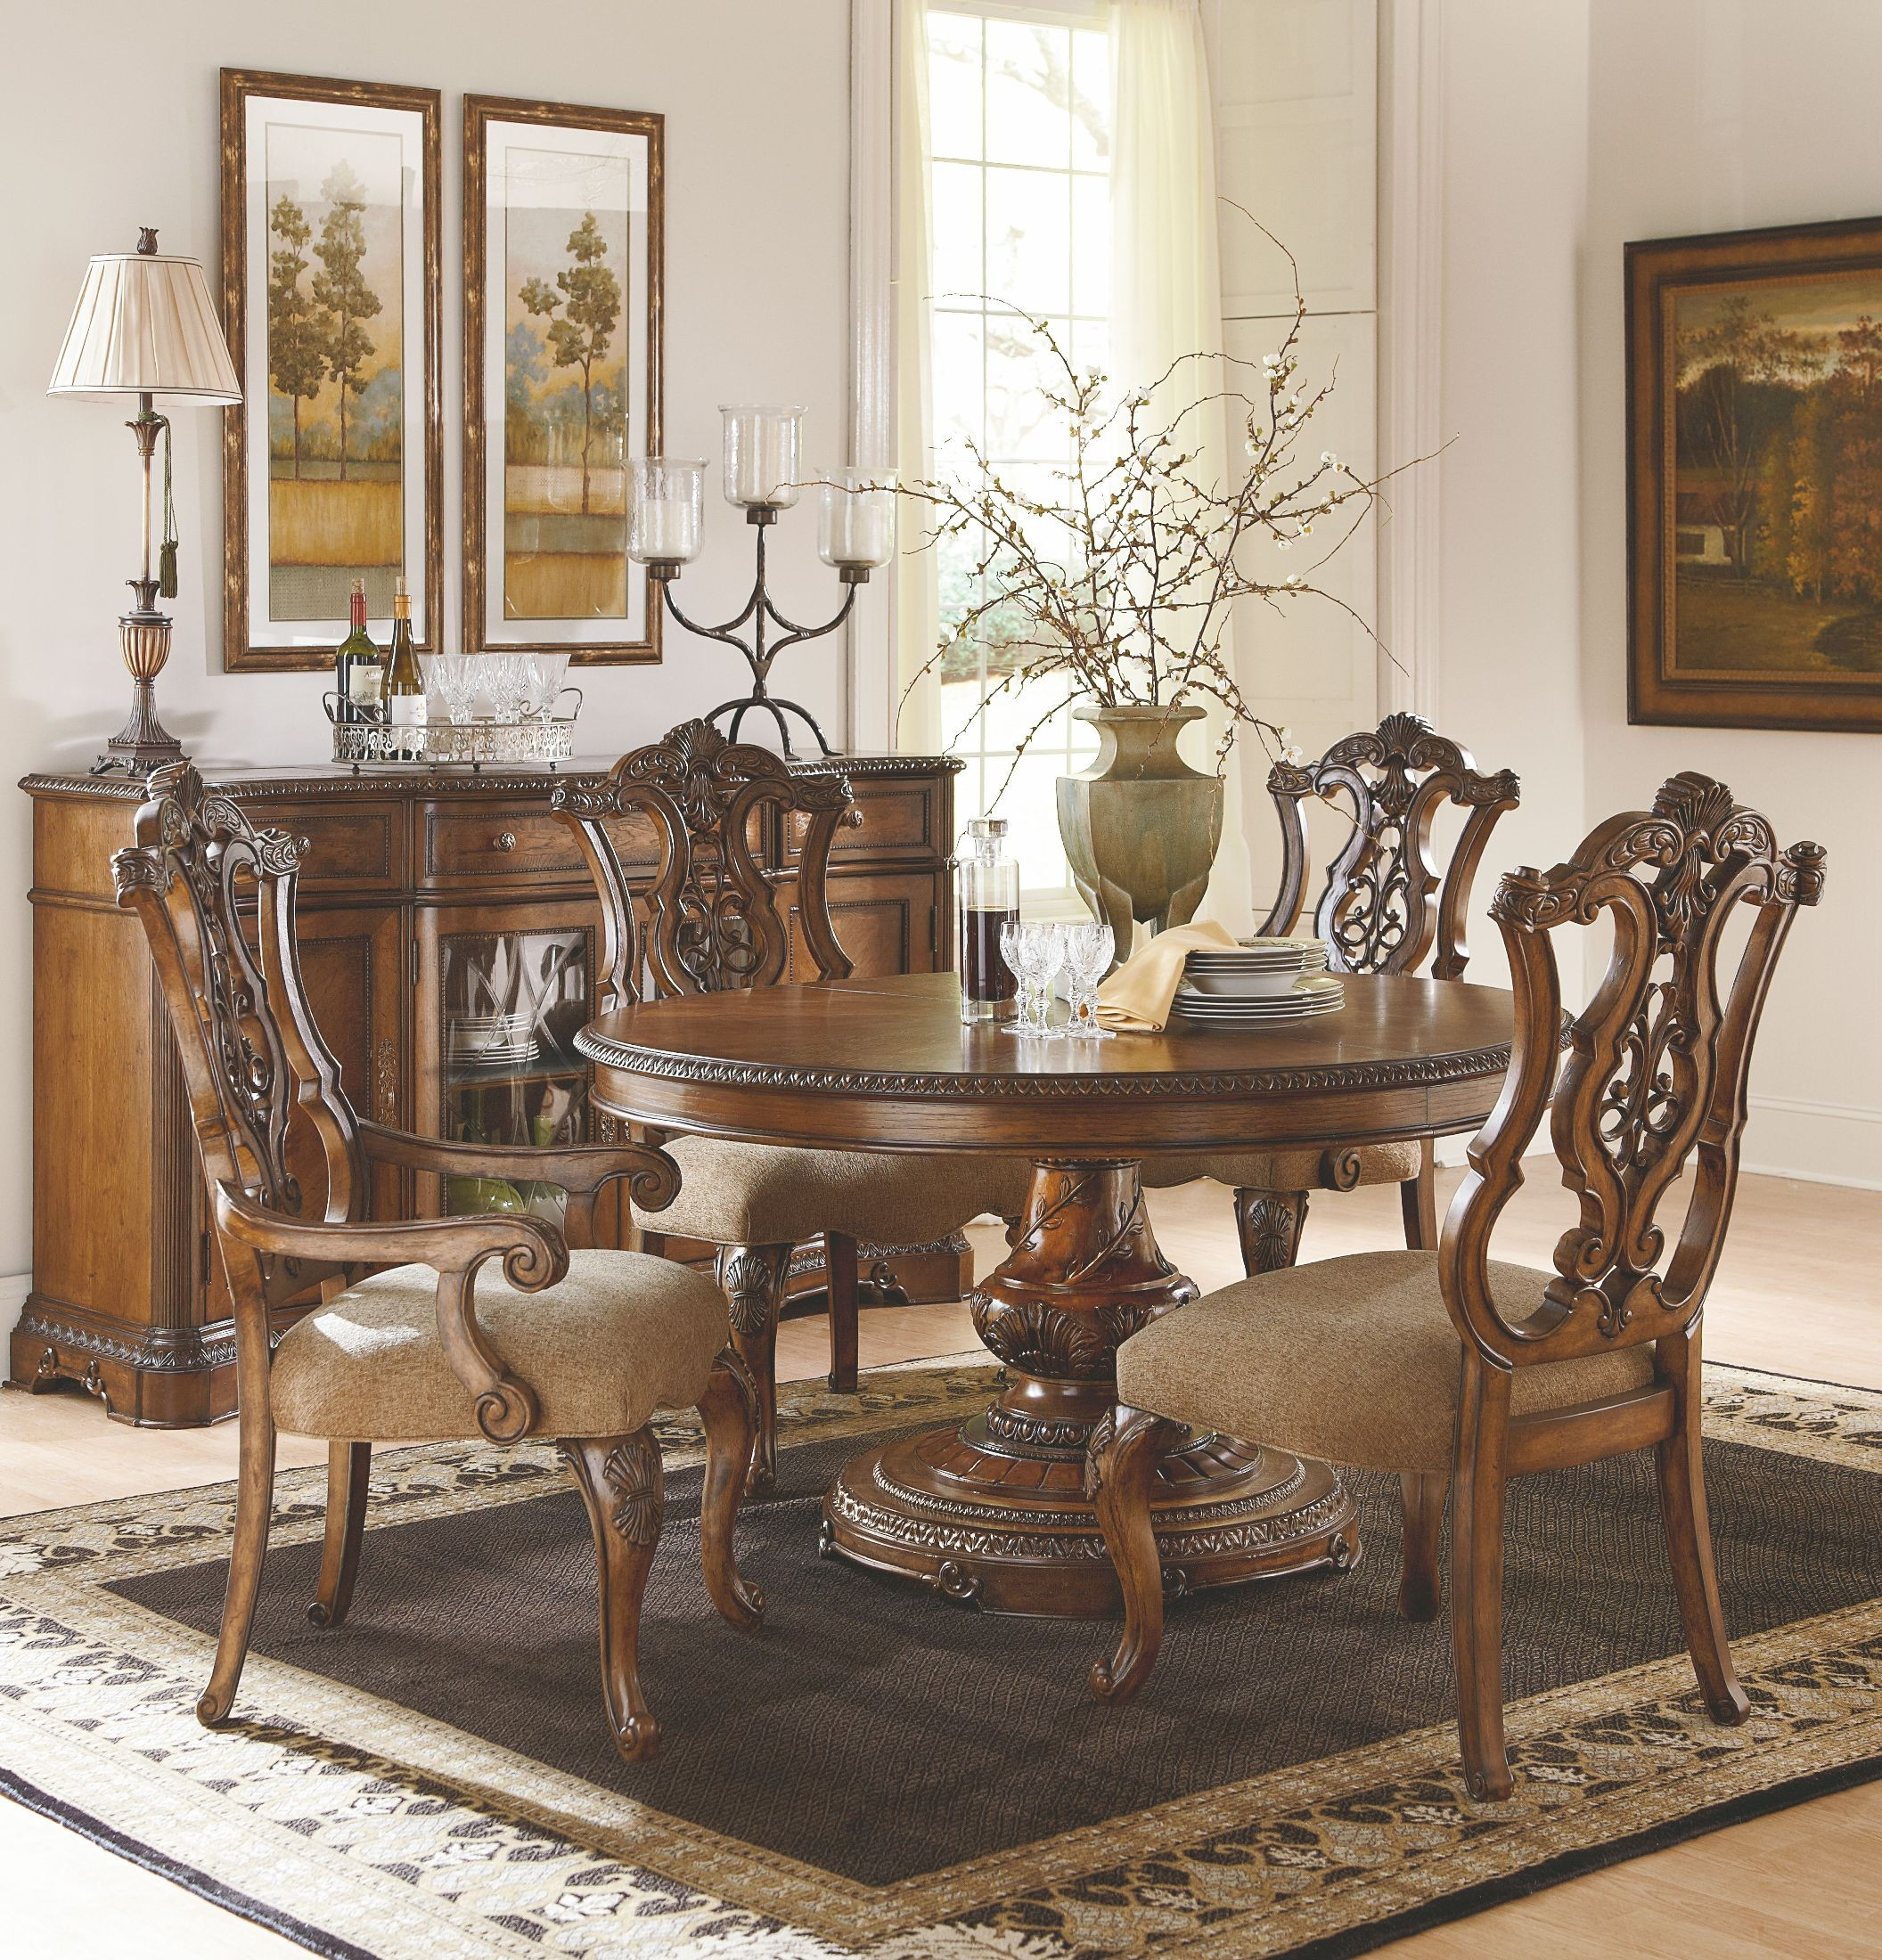 Round Dining Room Sets For 6: Pemberleigh Extendable Round To Oval Dining Room Set From